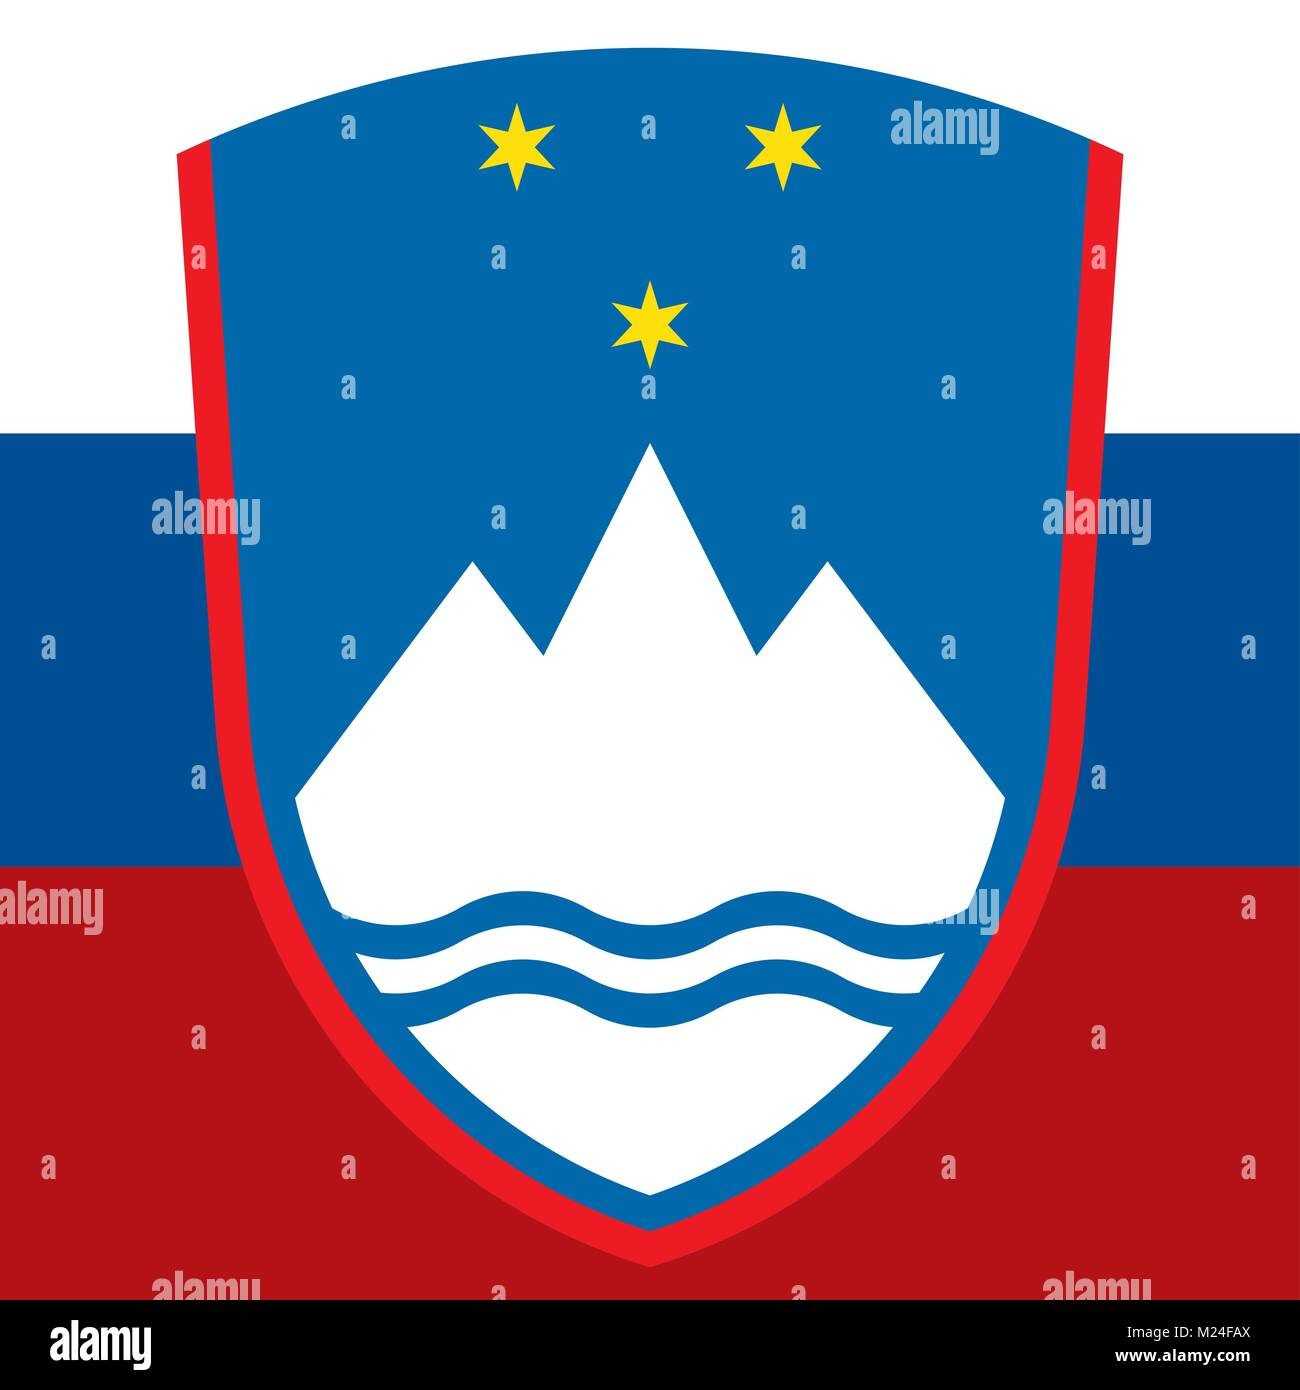 Slovenia coat of arms and flag, symbols of the country - Stock Vector